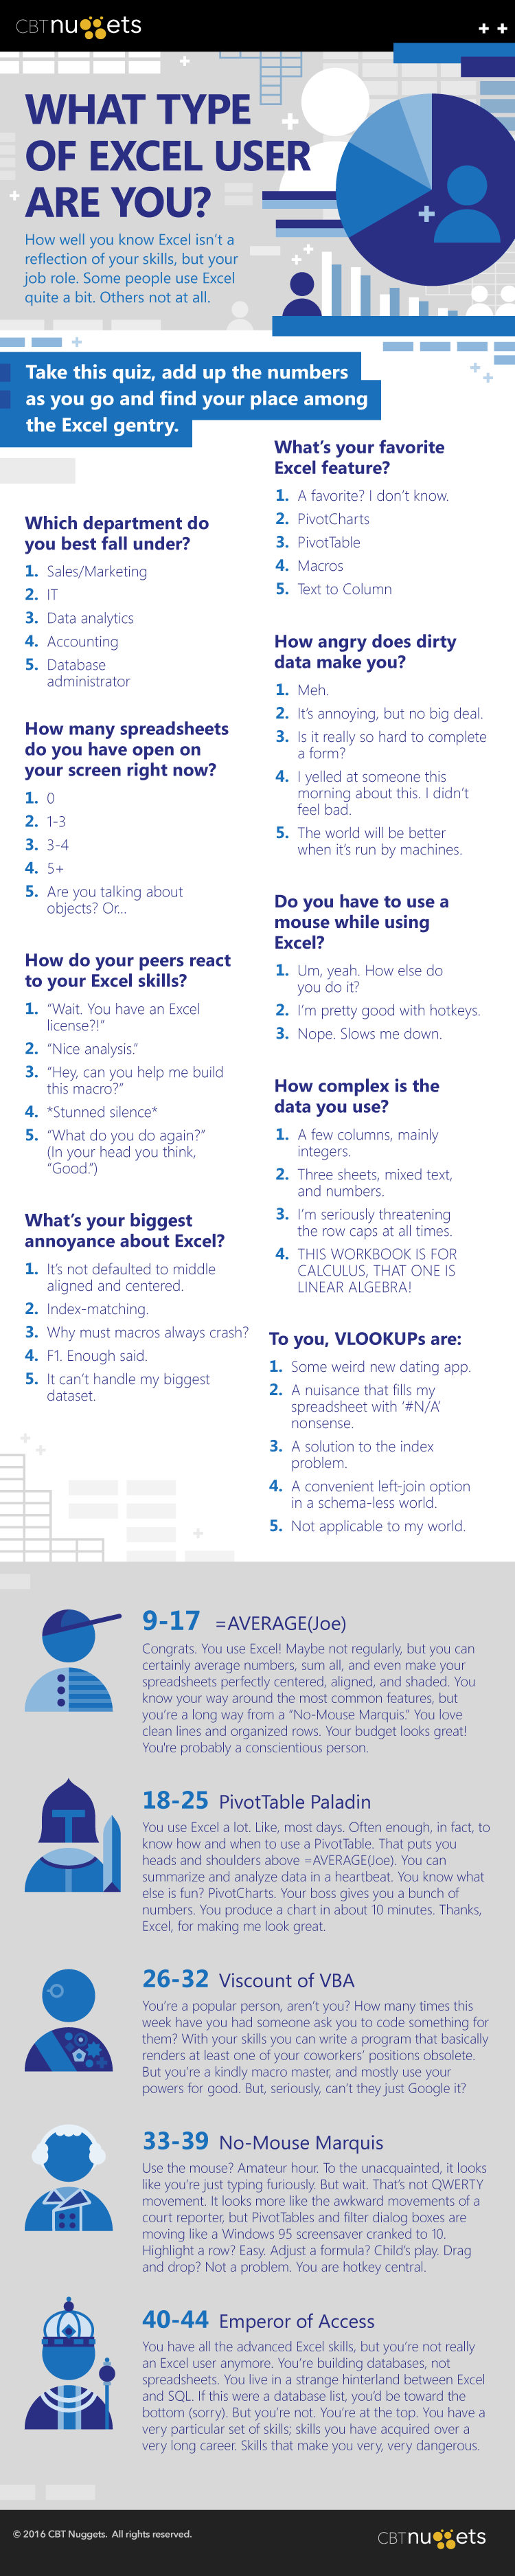 excel-infographic-3